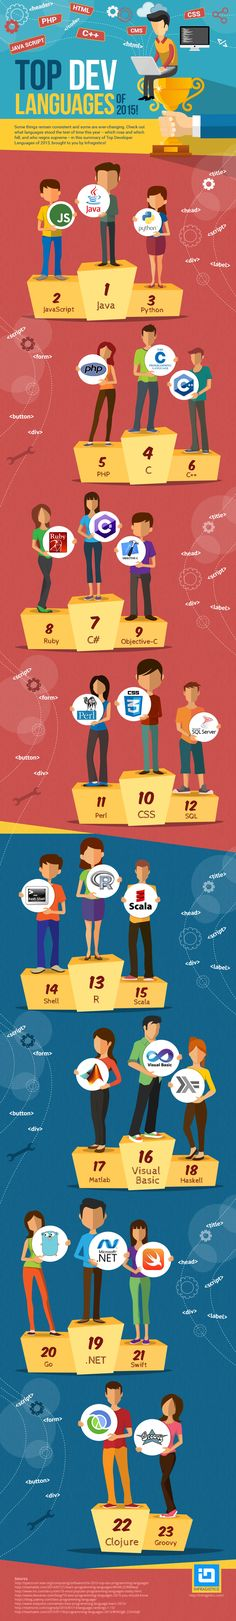 Using a combination of redmonk, IEEE, TIOBE, and several other sources, Infragistics has put together an infographic showing the top programming languages of 2015.